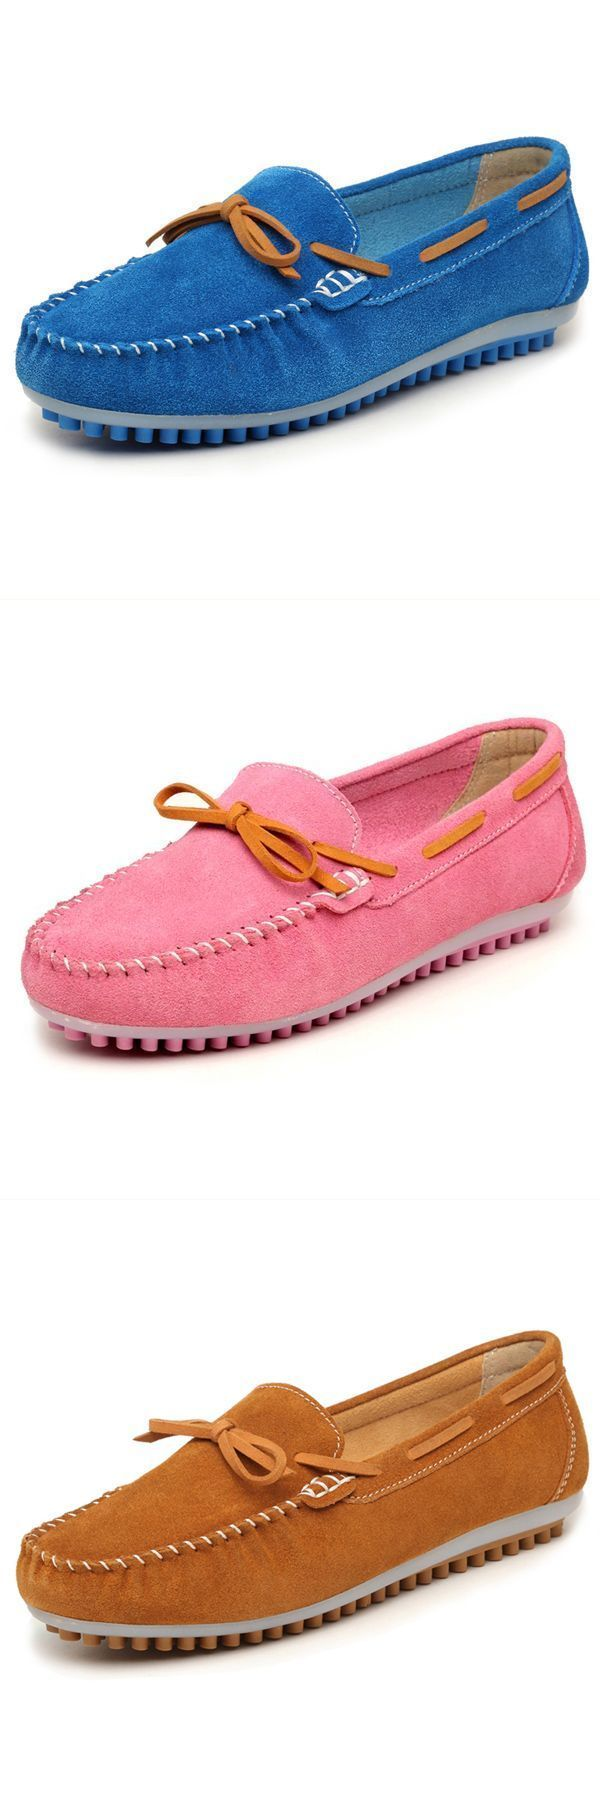 Flat shoe collection women casual flat shoes lace up round toe flats soft sole flat loafers #flat #loafers #mens #flat #pointed #loafers #flat #silver #loafers #glitter #flat #loafers